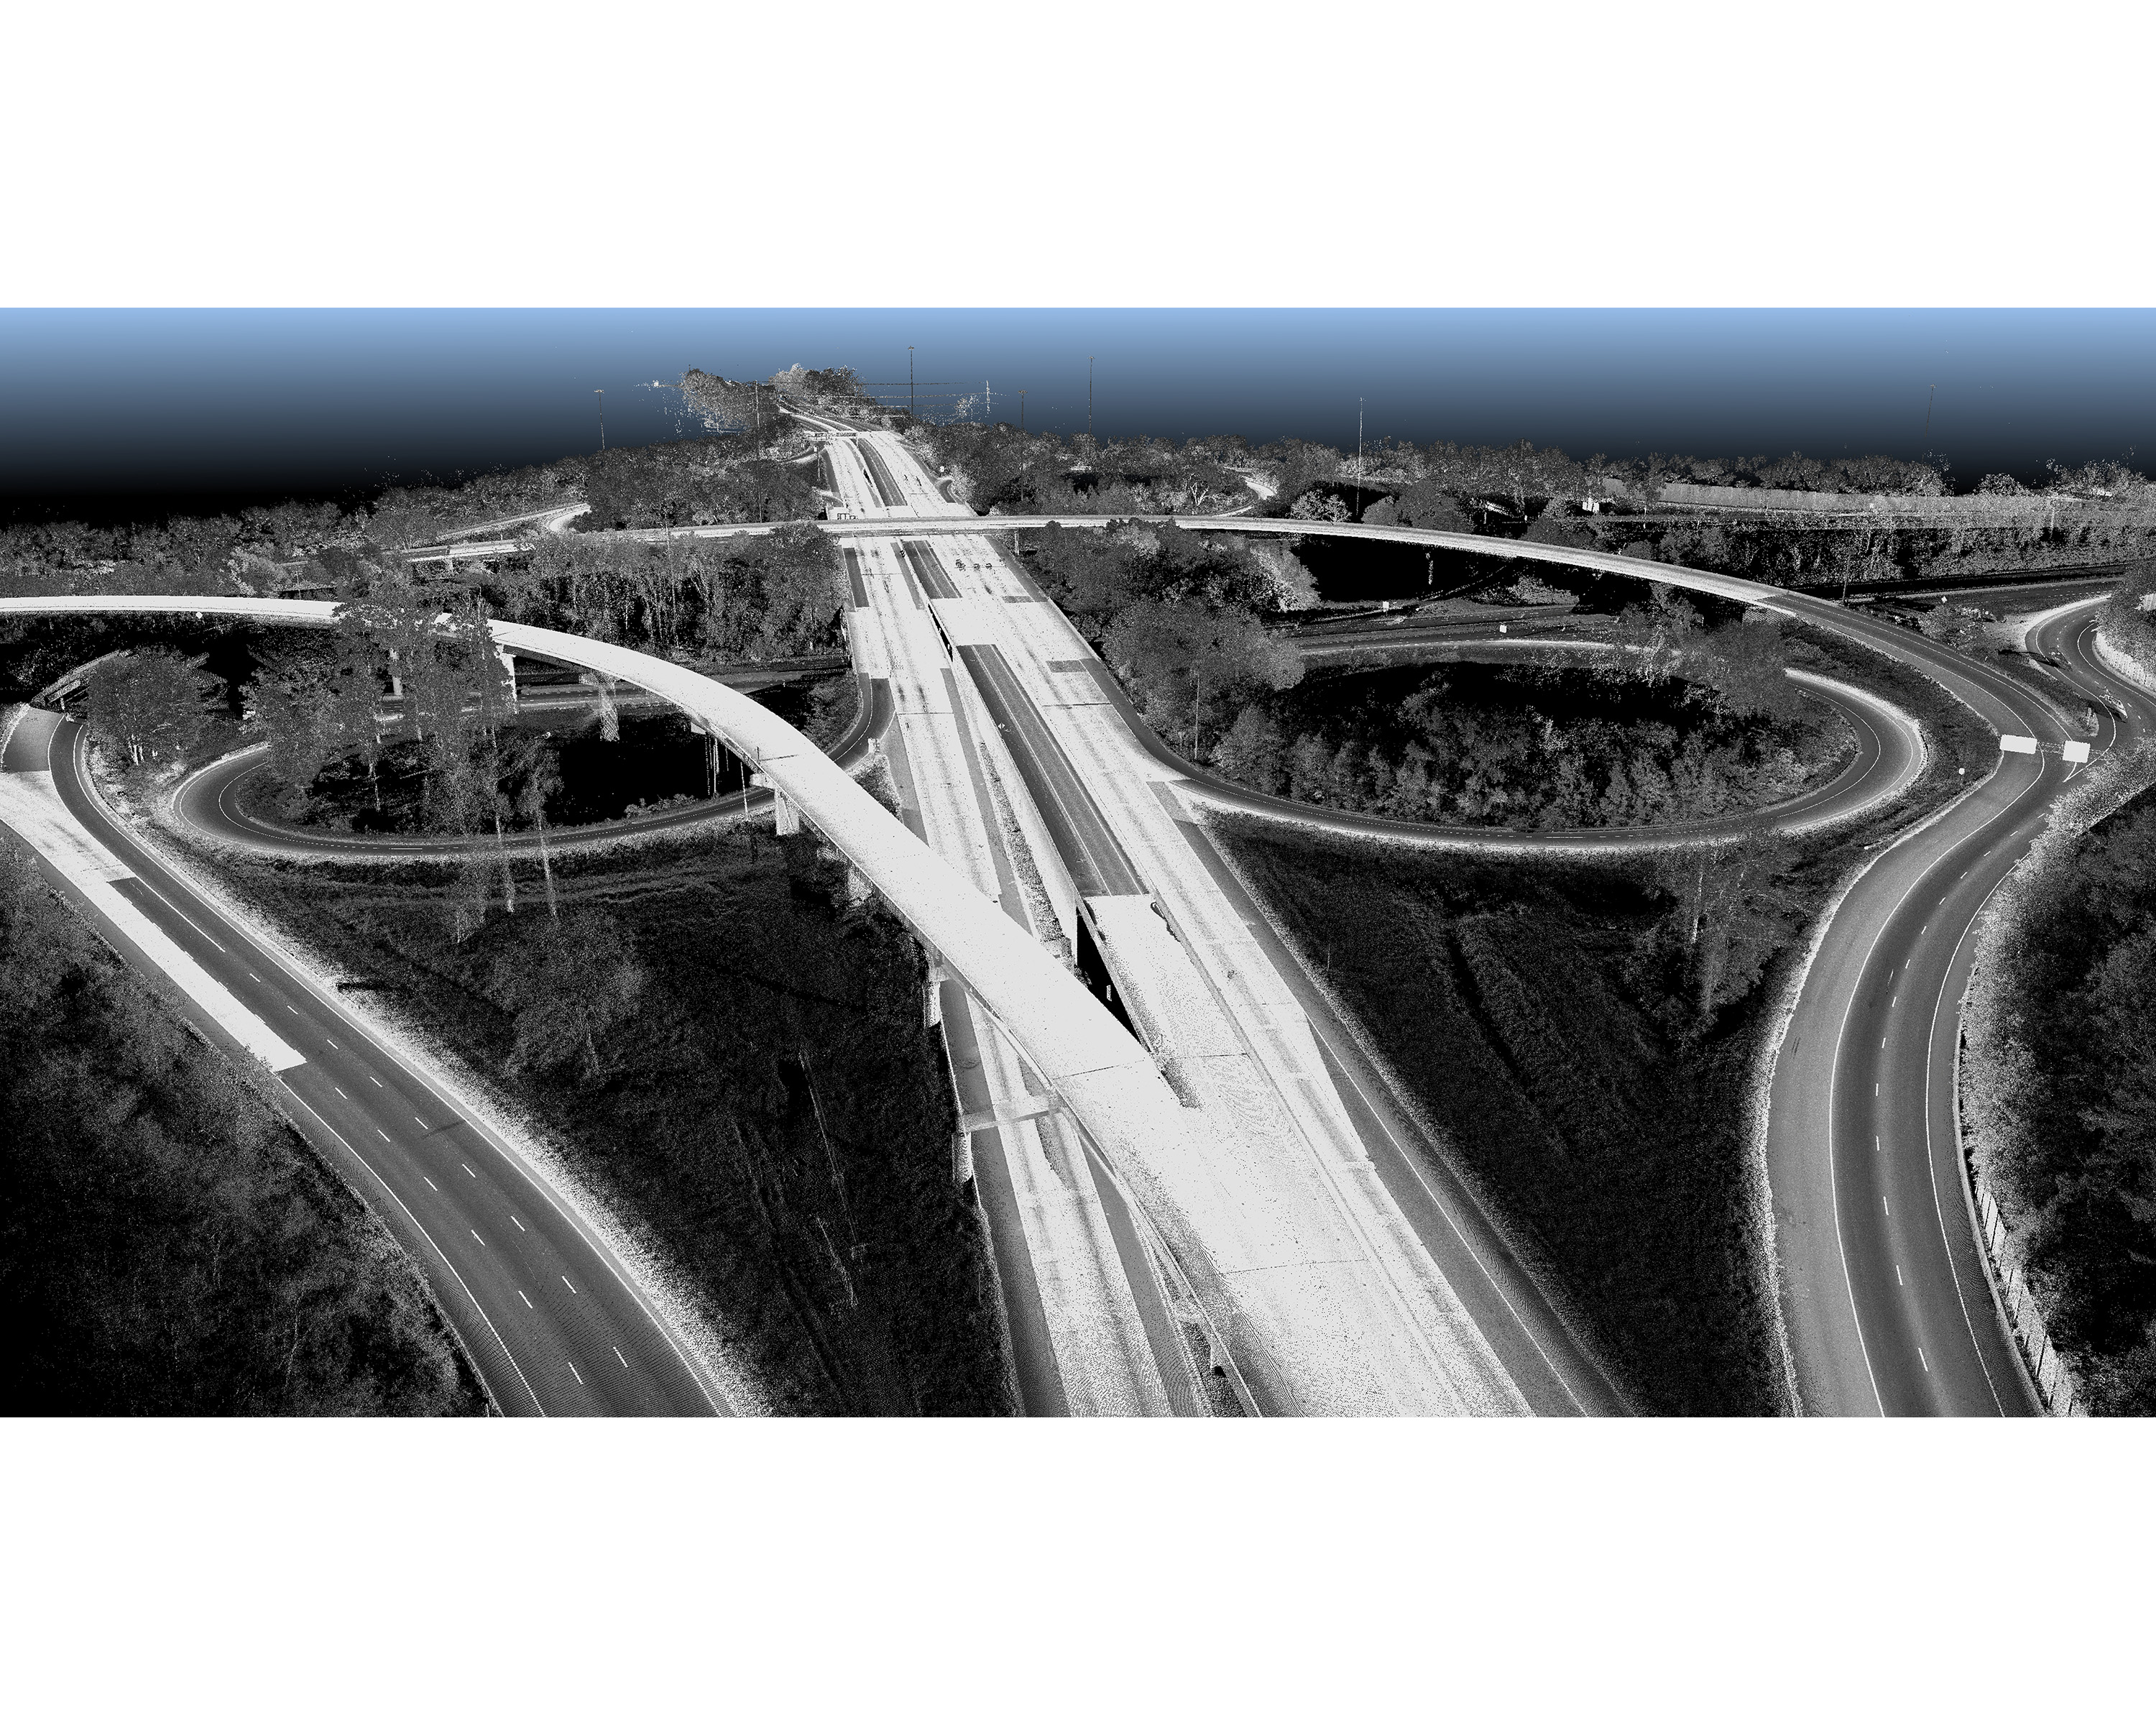 LiDAR_point_cloud_of_the_I-64I-264_interchange.jpg